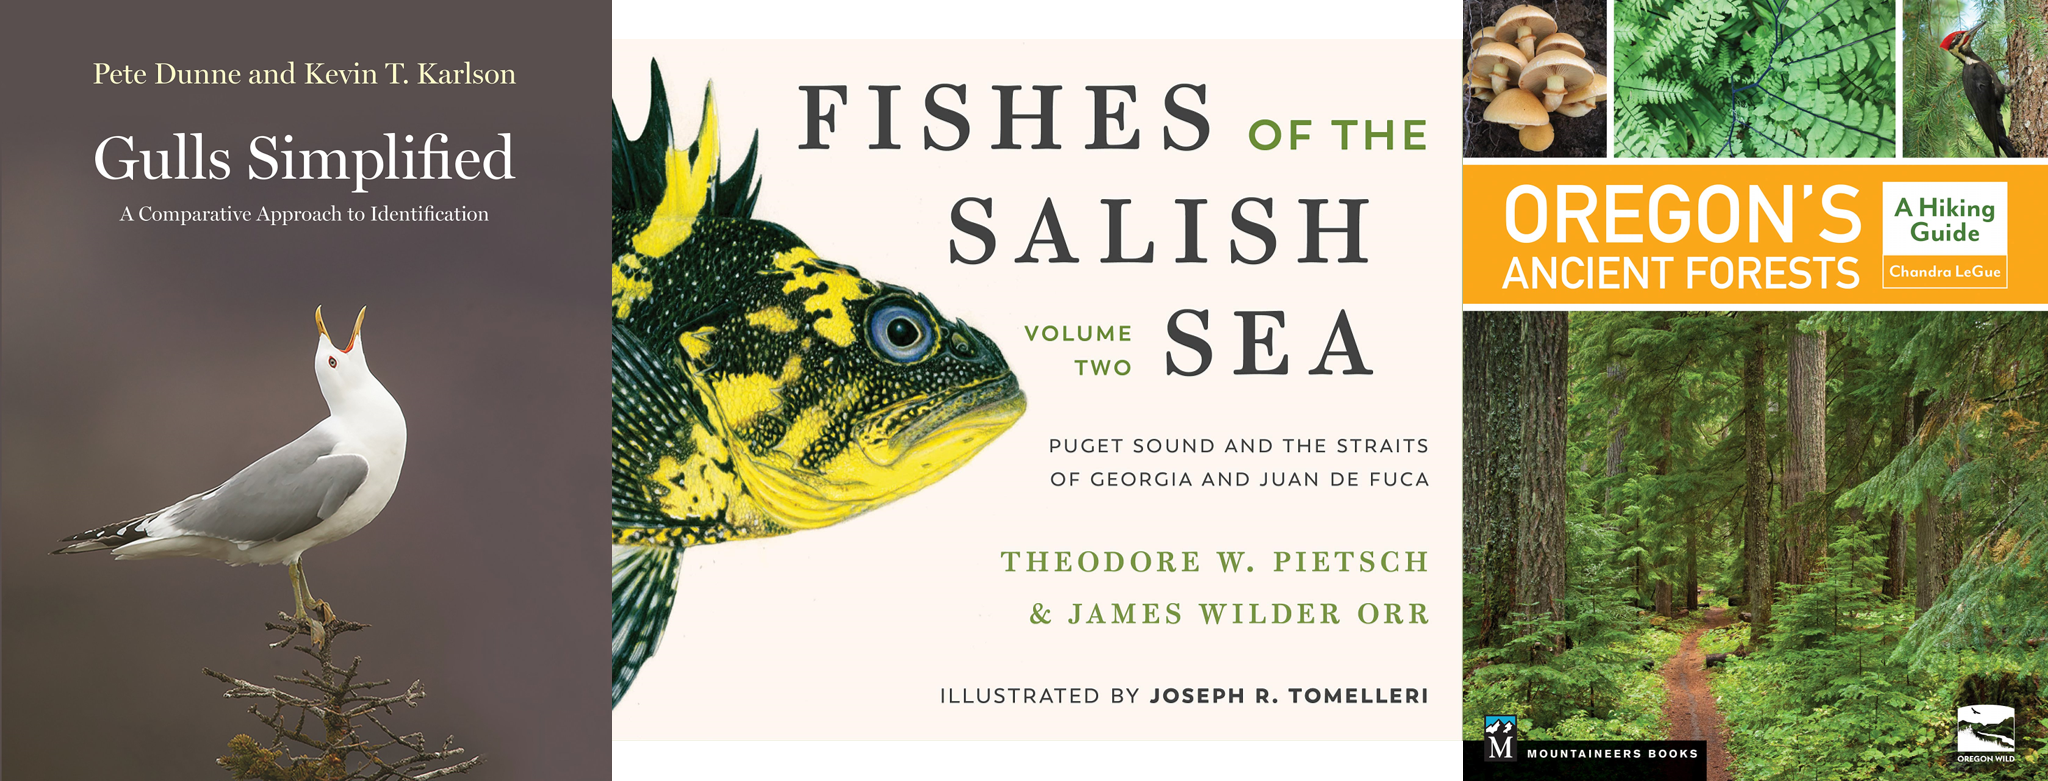 Gulls simplified, Fishes of the Salish Sea,  Oregon's ancient forests